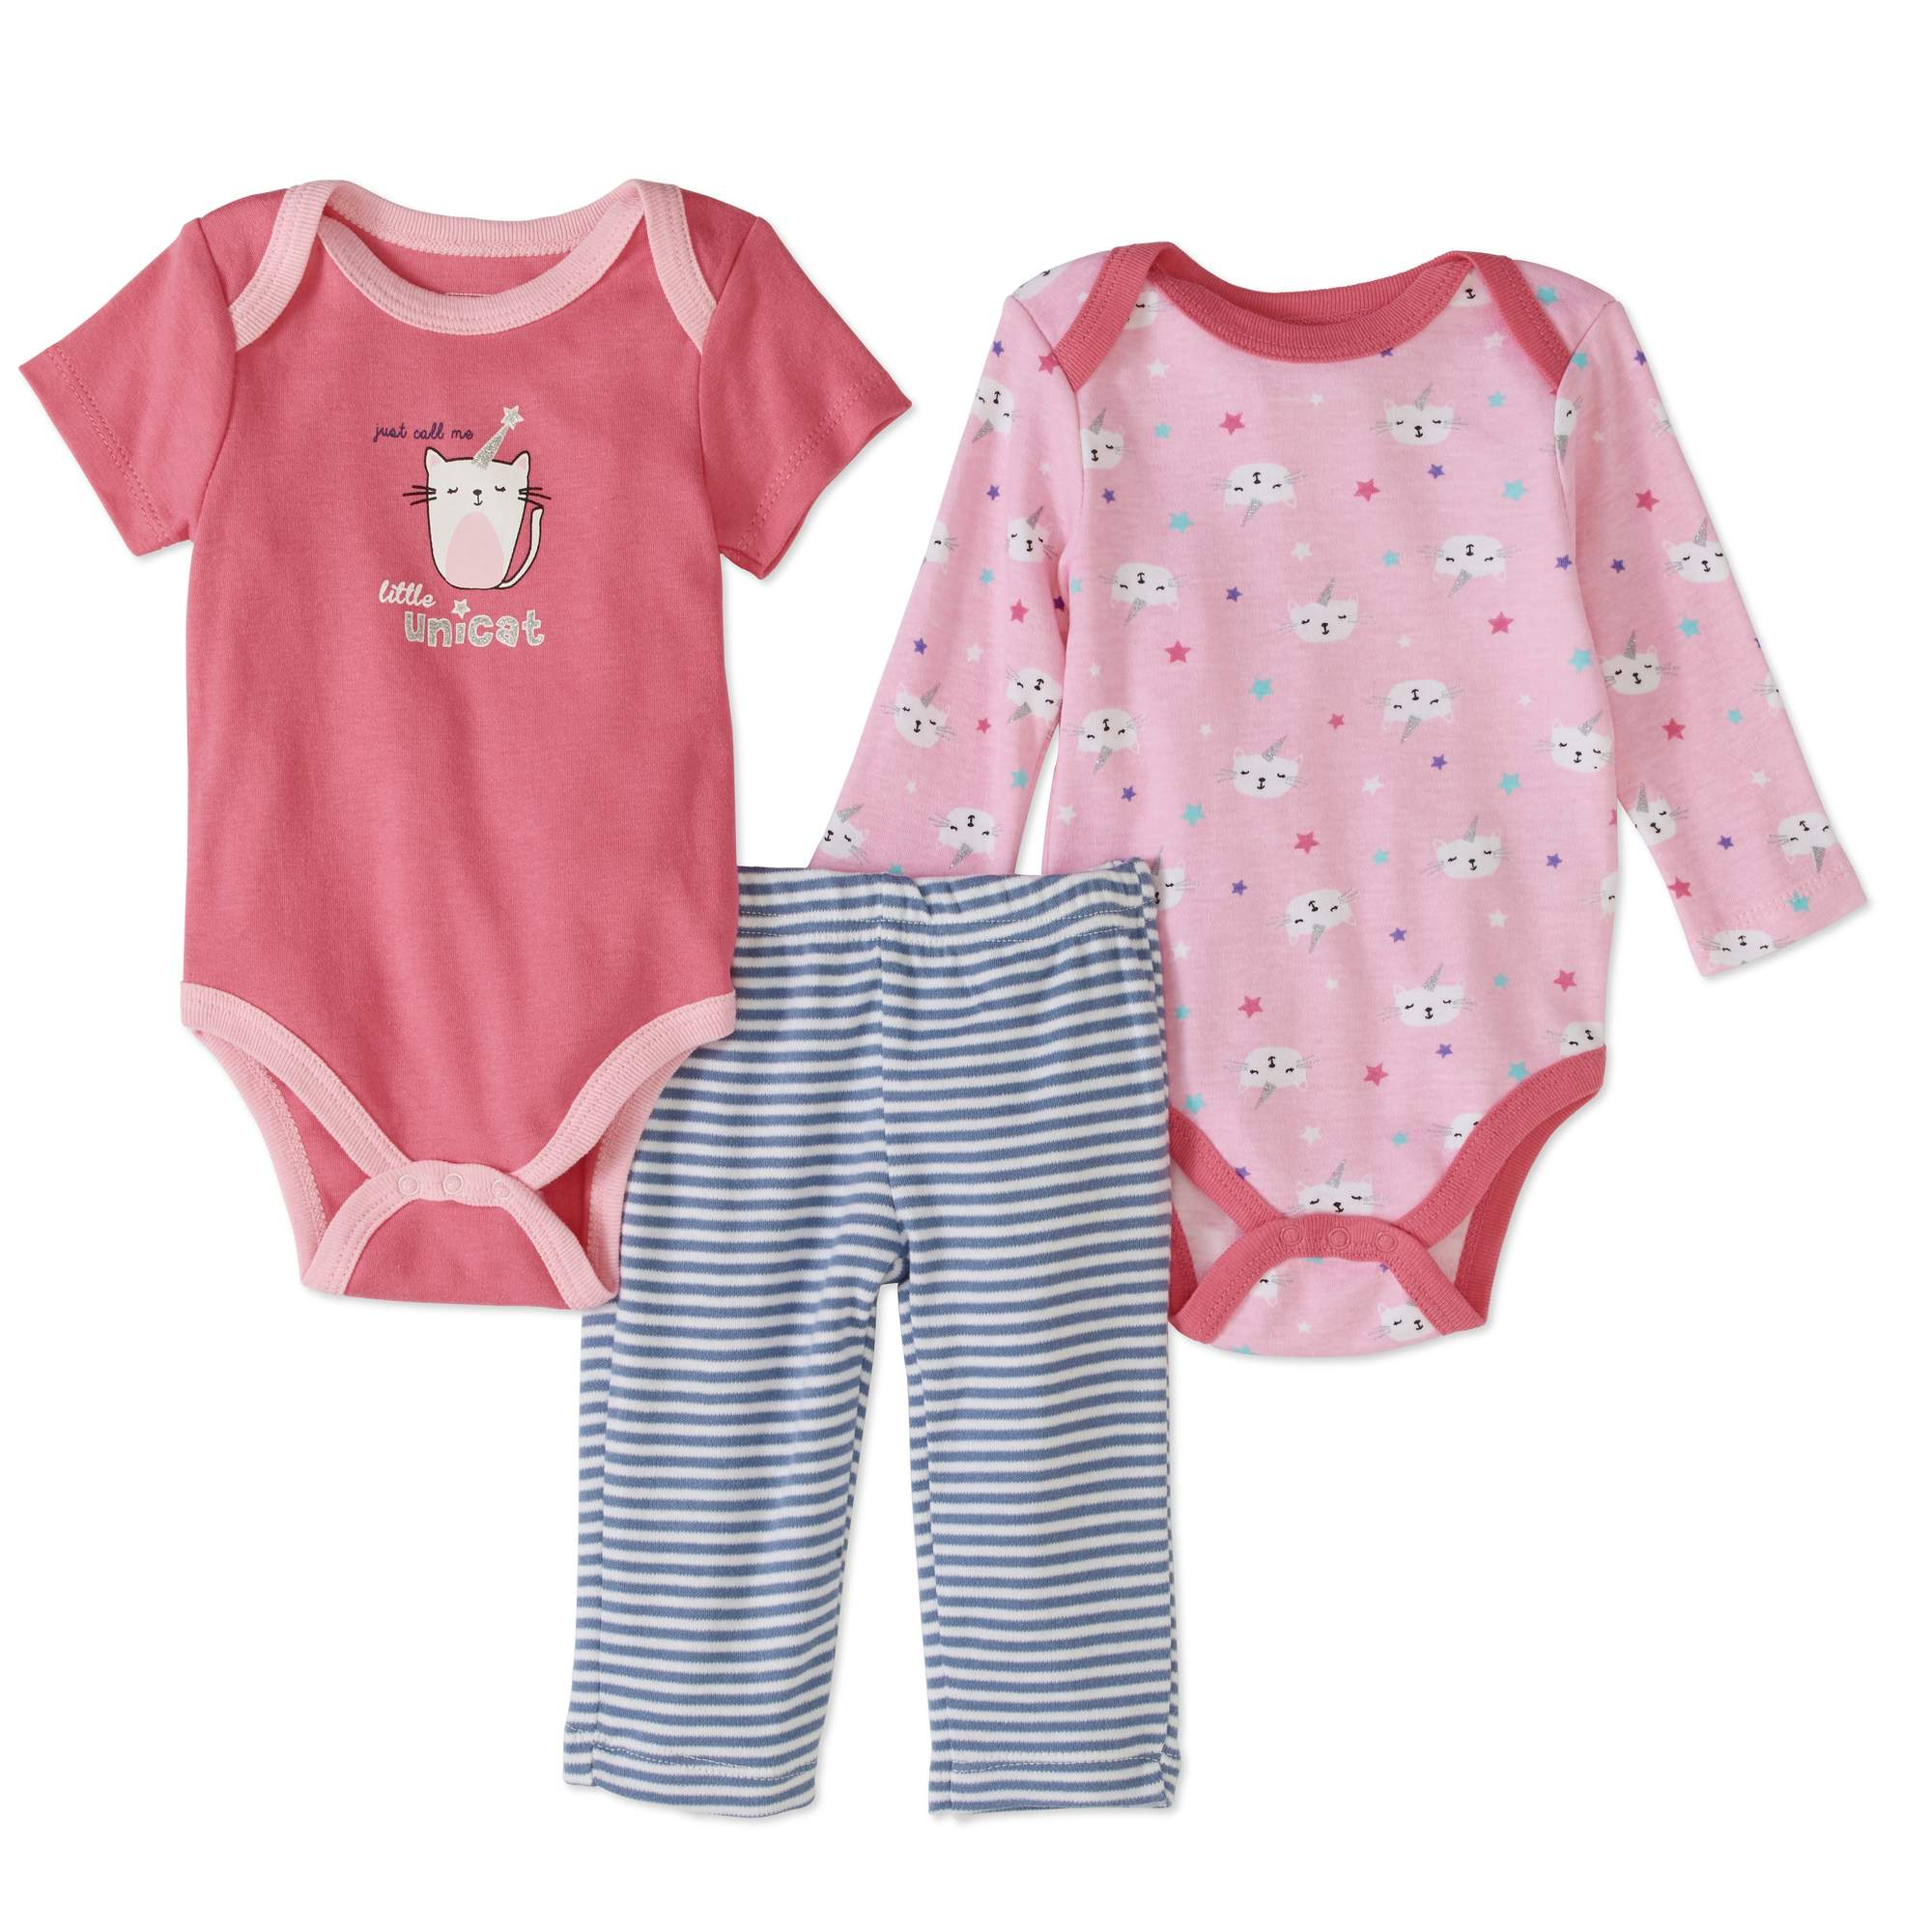 Quiltex Newborn Baby Girls' Turn-Me-Around 3-Piece Set